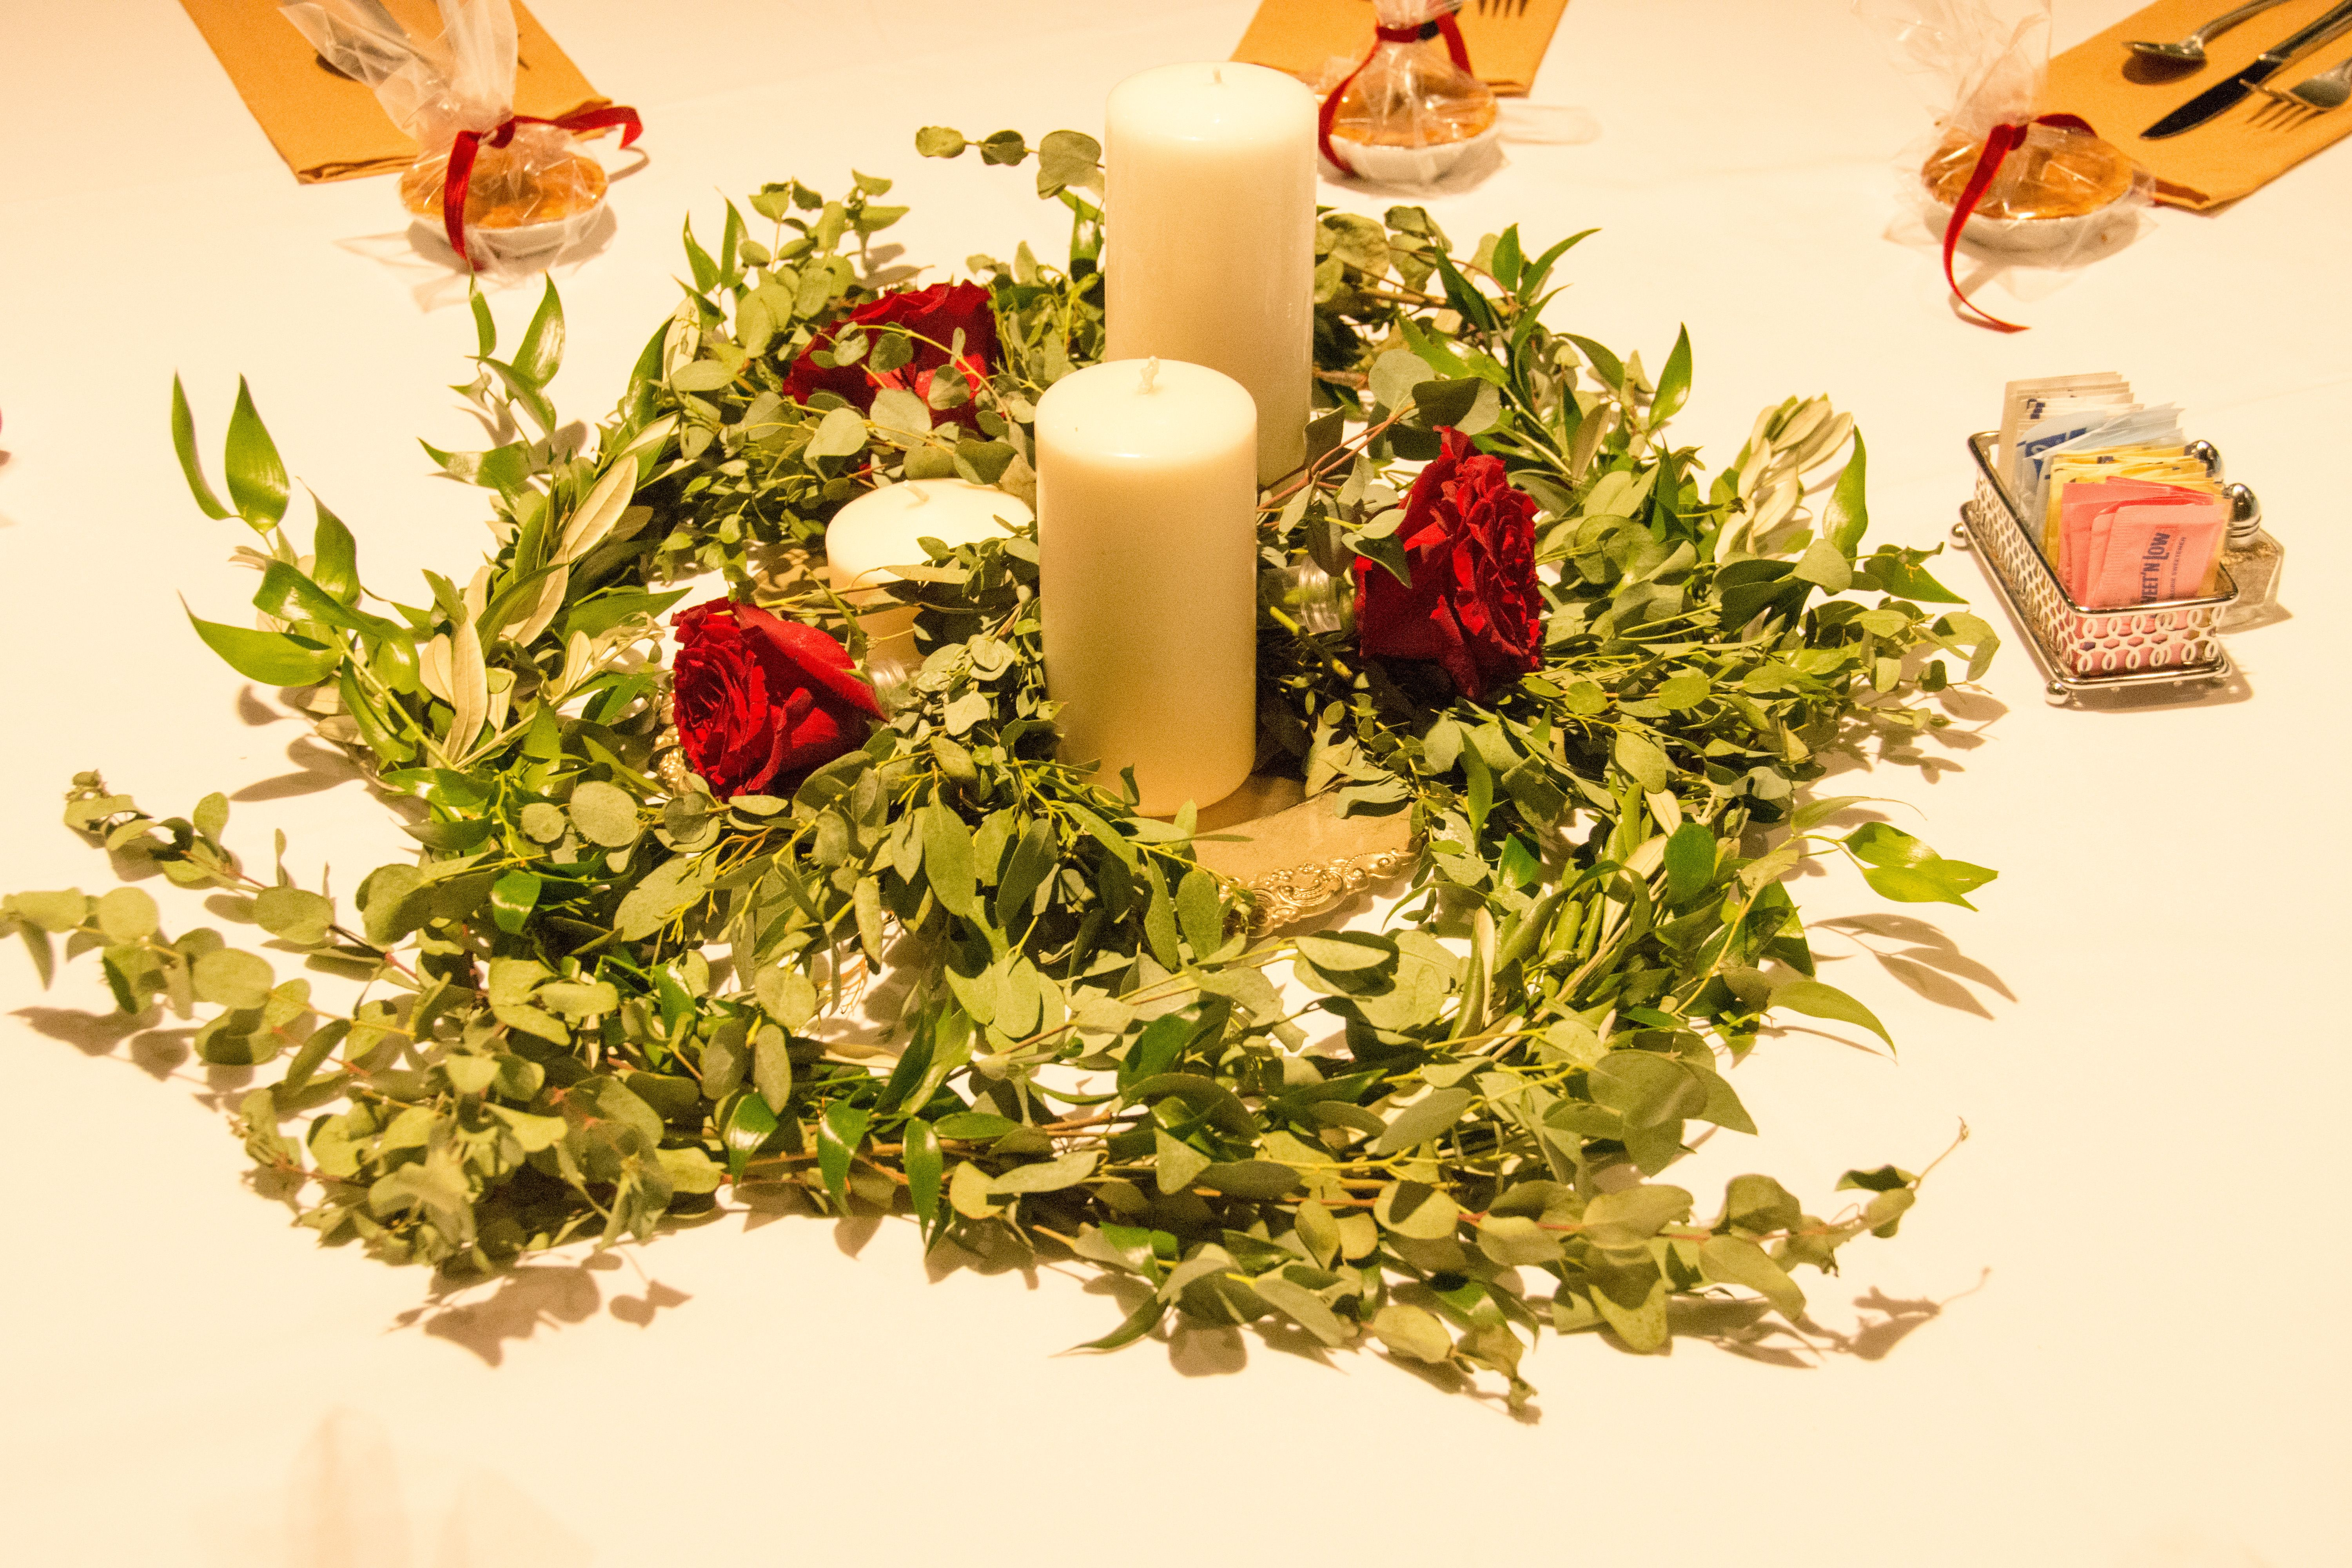 table centerpiece of myrtle and eucalyptus with garden